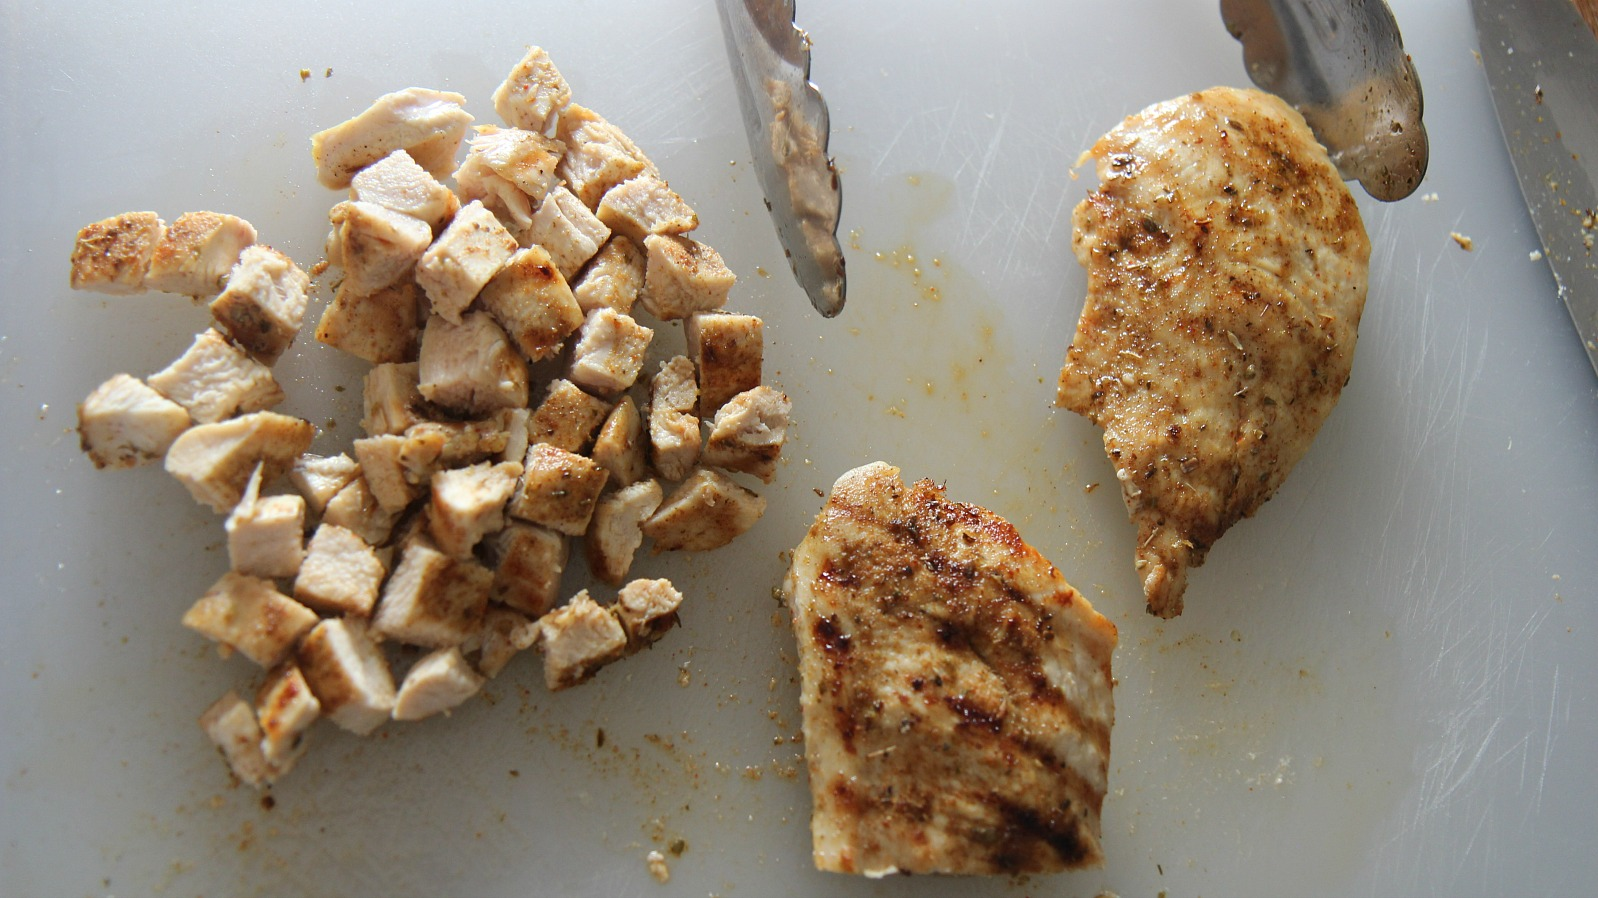 Cubed the grilled chicken into bite sized pieces.